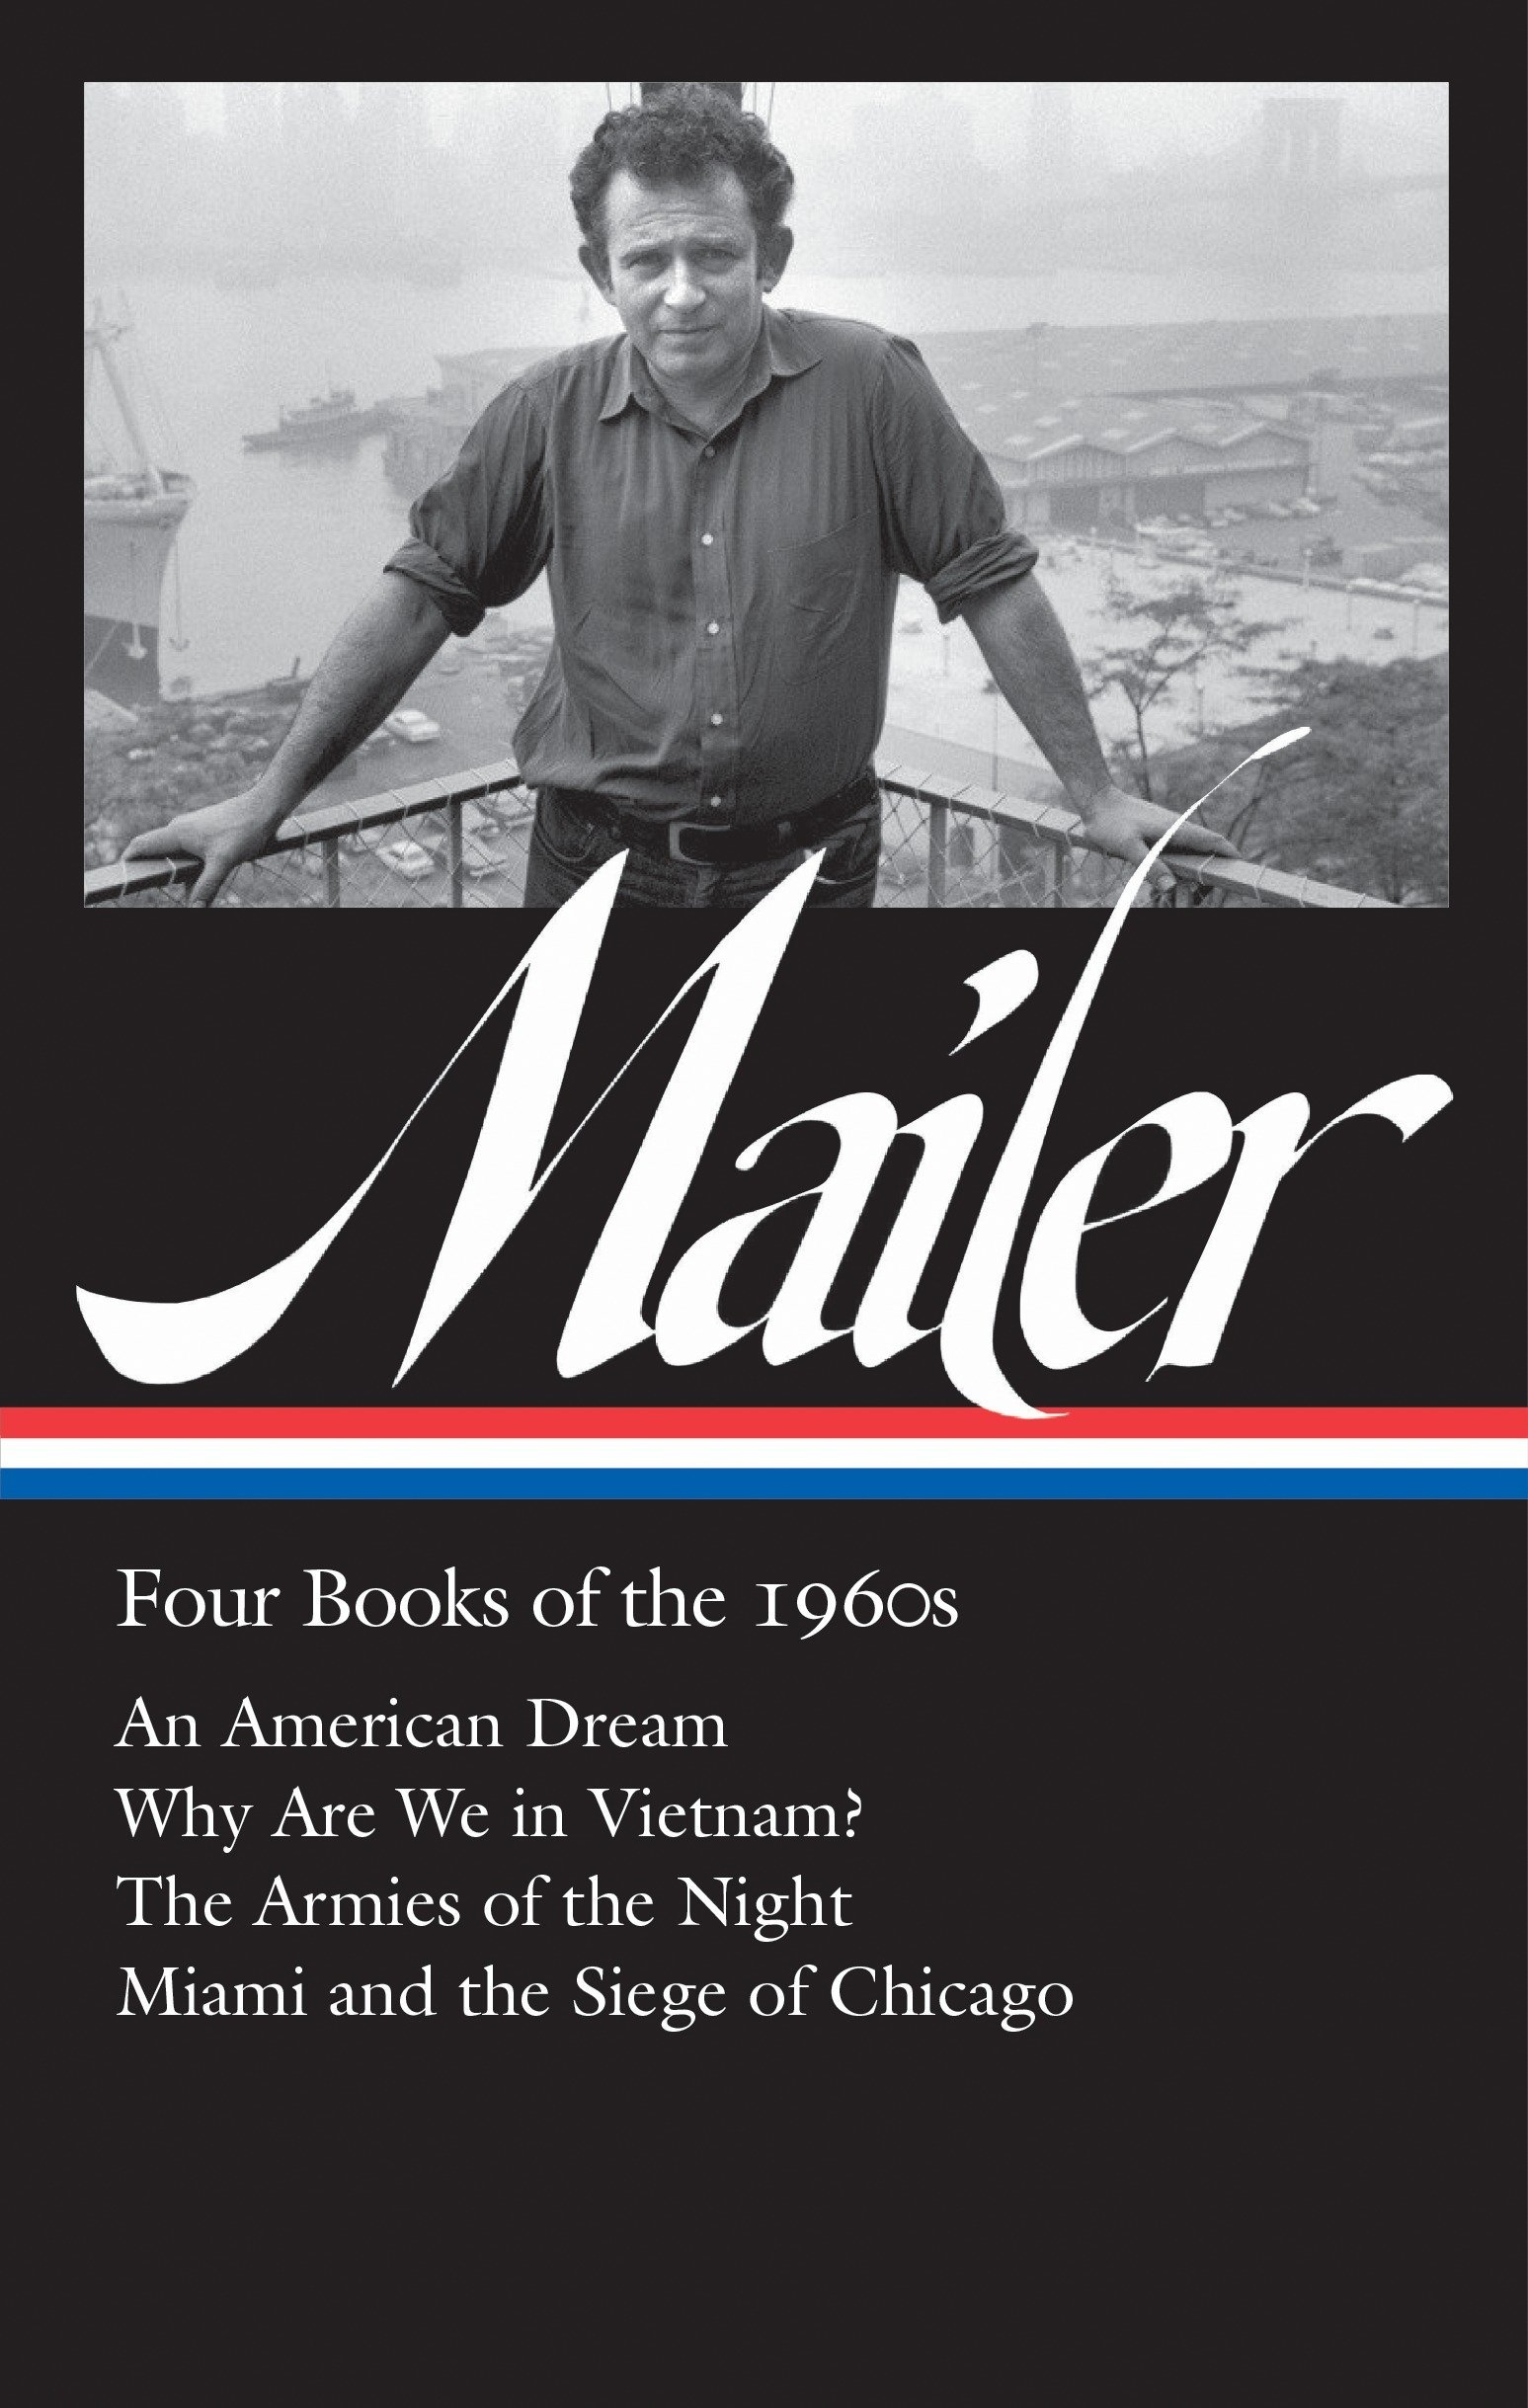 Norman Mailer: Four Books of the 1960s (LOA #305): An American Dream / Why Are We in Vietnam? / The Armies of the Night / Miami and the Siege of Chicago (Library of America Norman Mailer Edition)